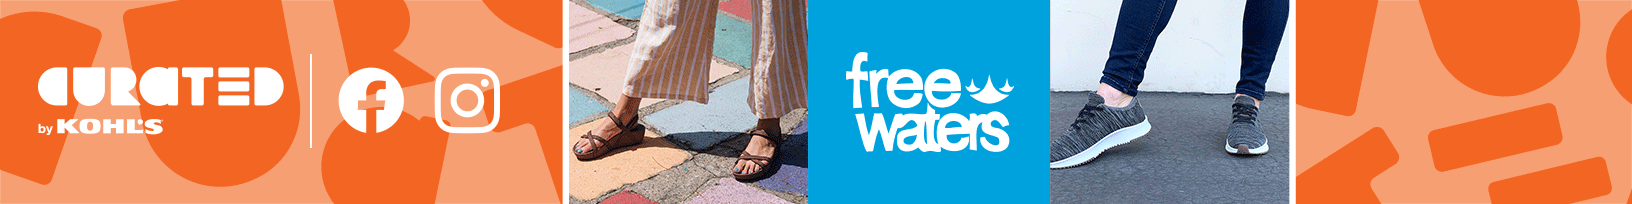 Curated by Kohl's Freewaters